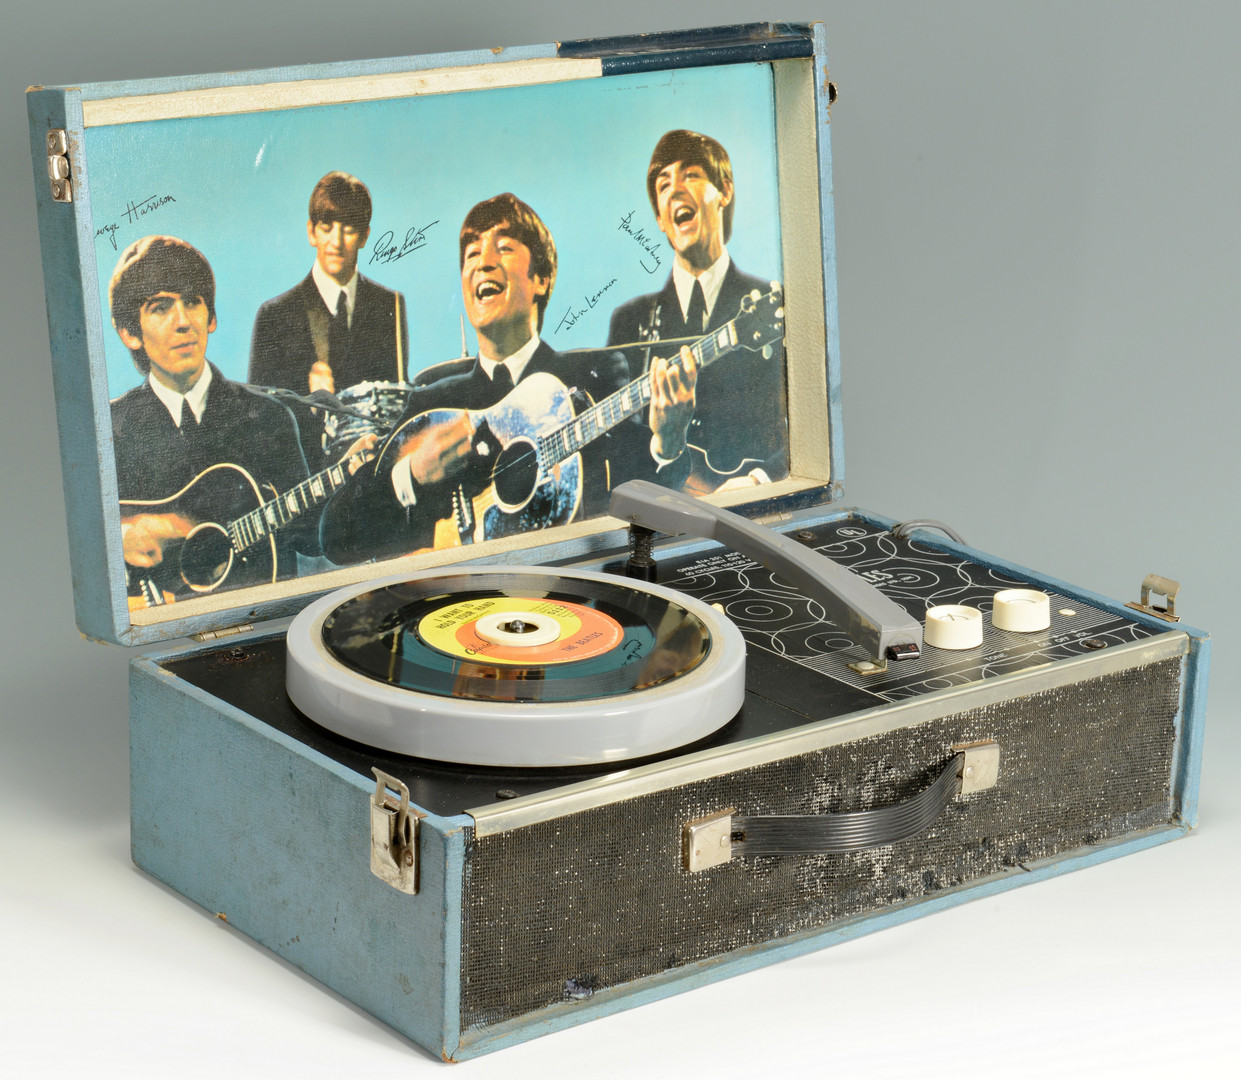 Lot 737 1964 Beatles Record Player Nems Amp One 45 Record